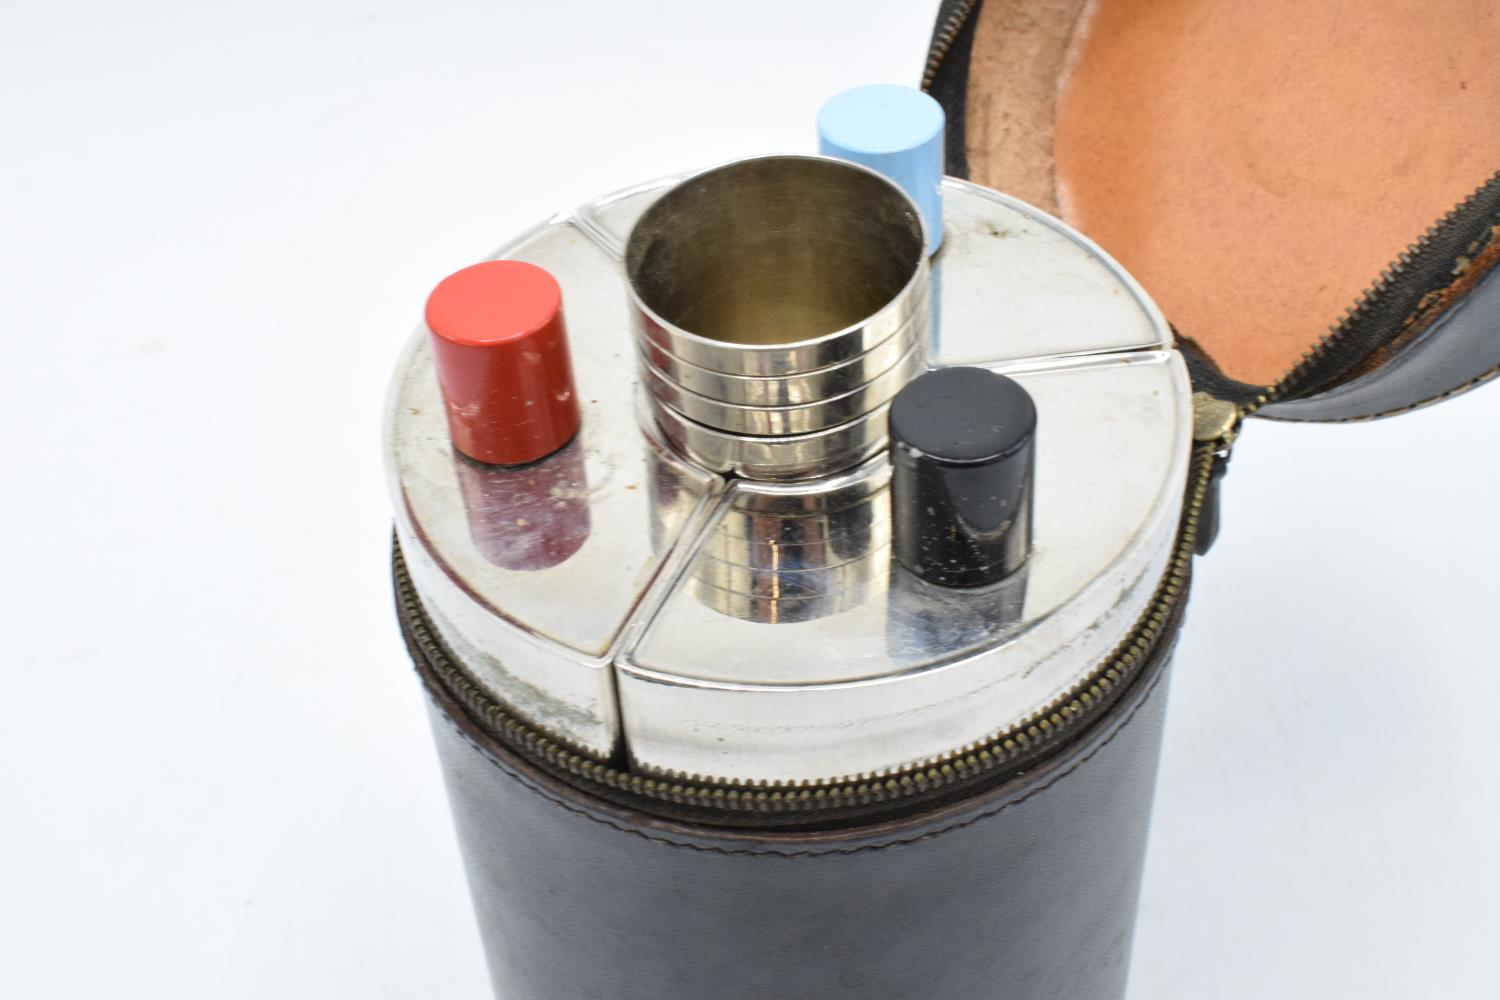 A 20th century travelling drinks set to include 3 flasks and 4 cups in a leather carry case. - Image 2 of 3